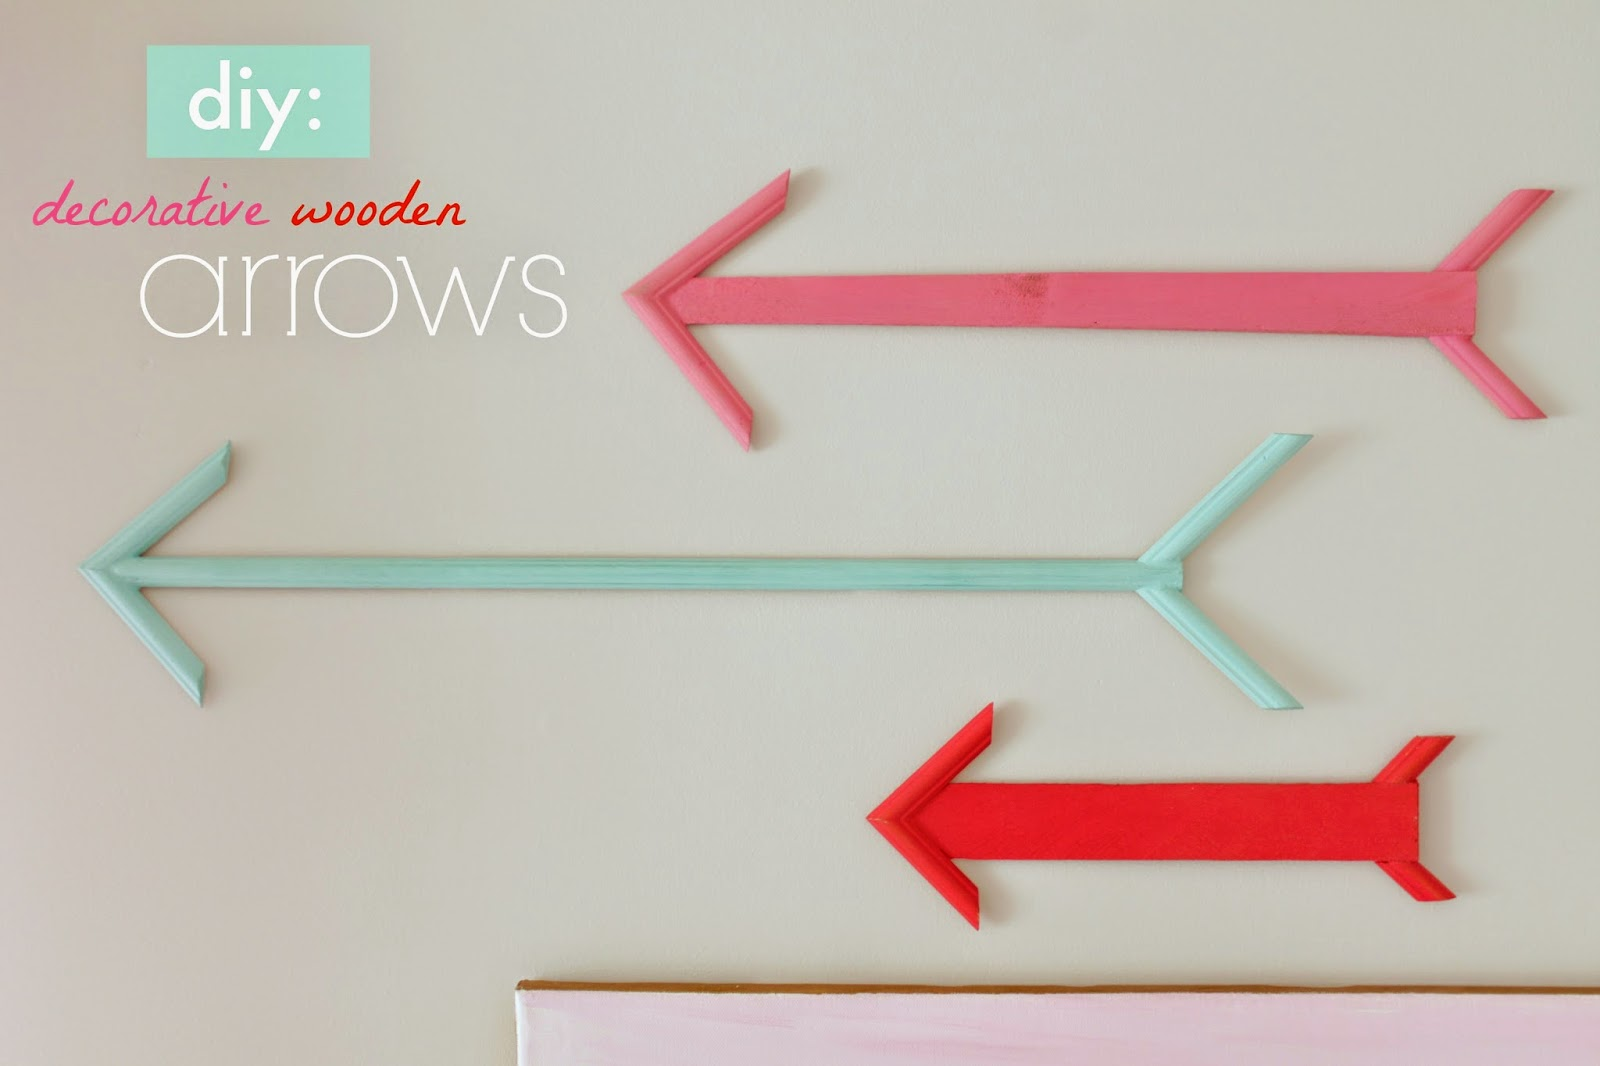 decorative wooden arrows